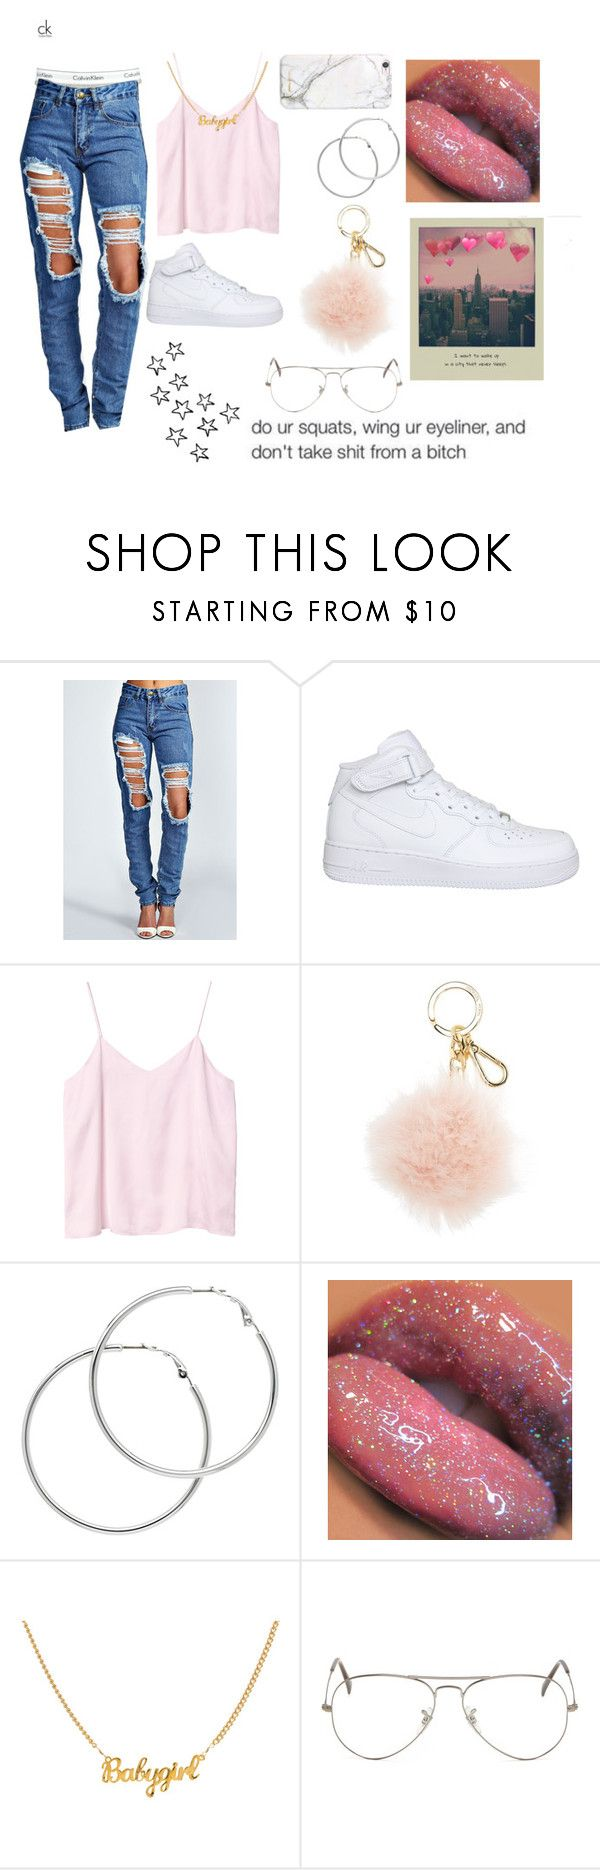 """""""Su Veneno"""" by linagbotello on Polyvore featuring Calvin Klein, Boohoo, NIKE, Monki, MICHAEL Michael Kors, Melissa Odabash, Ray-Ban and russell+hazel"""